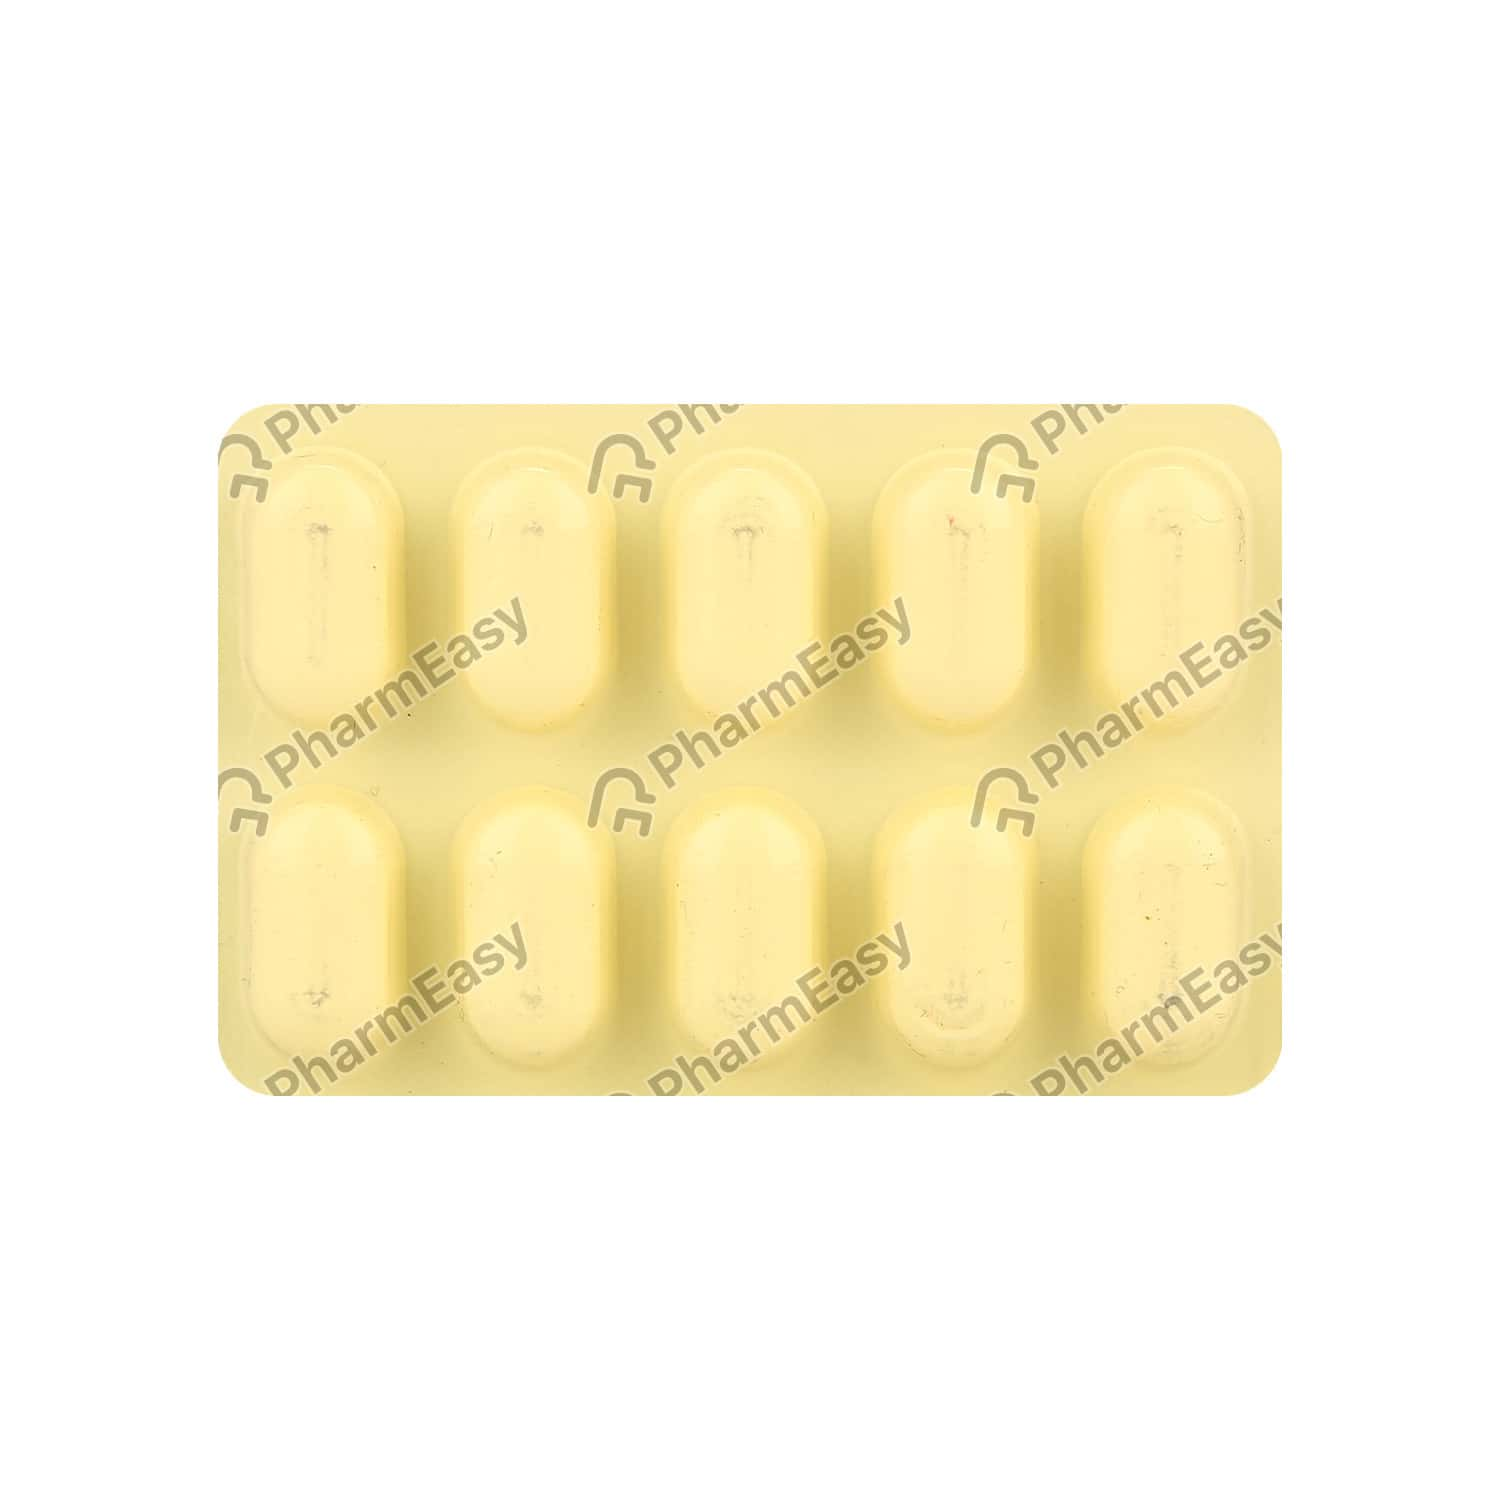 Ezorb Ds 1120mg Strip Of 10 Tablets